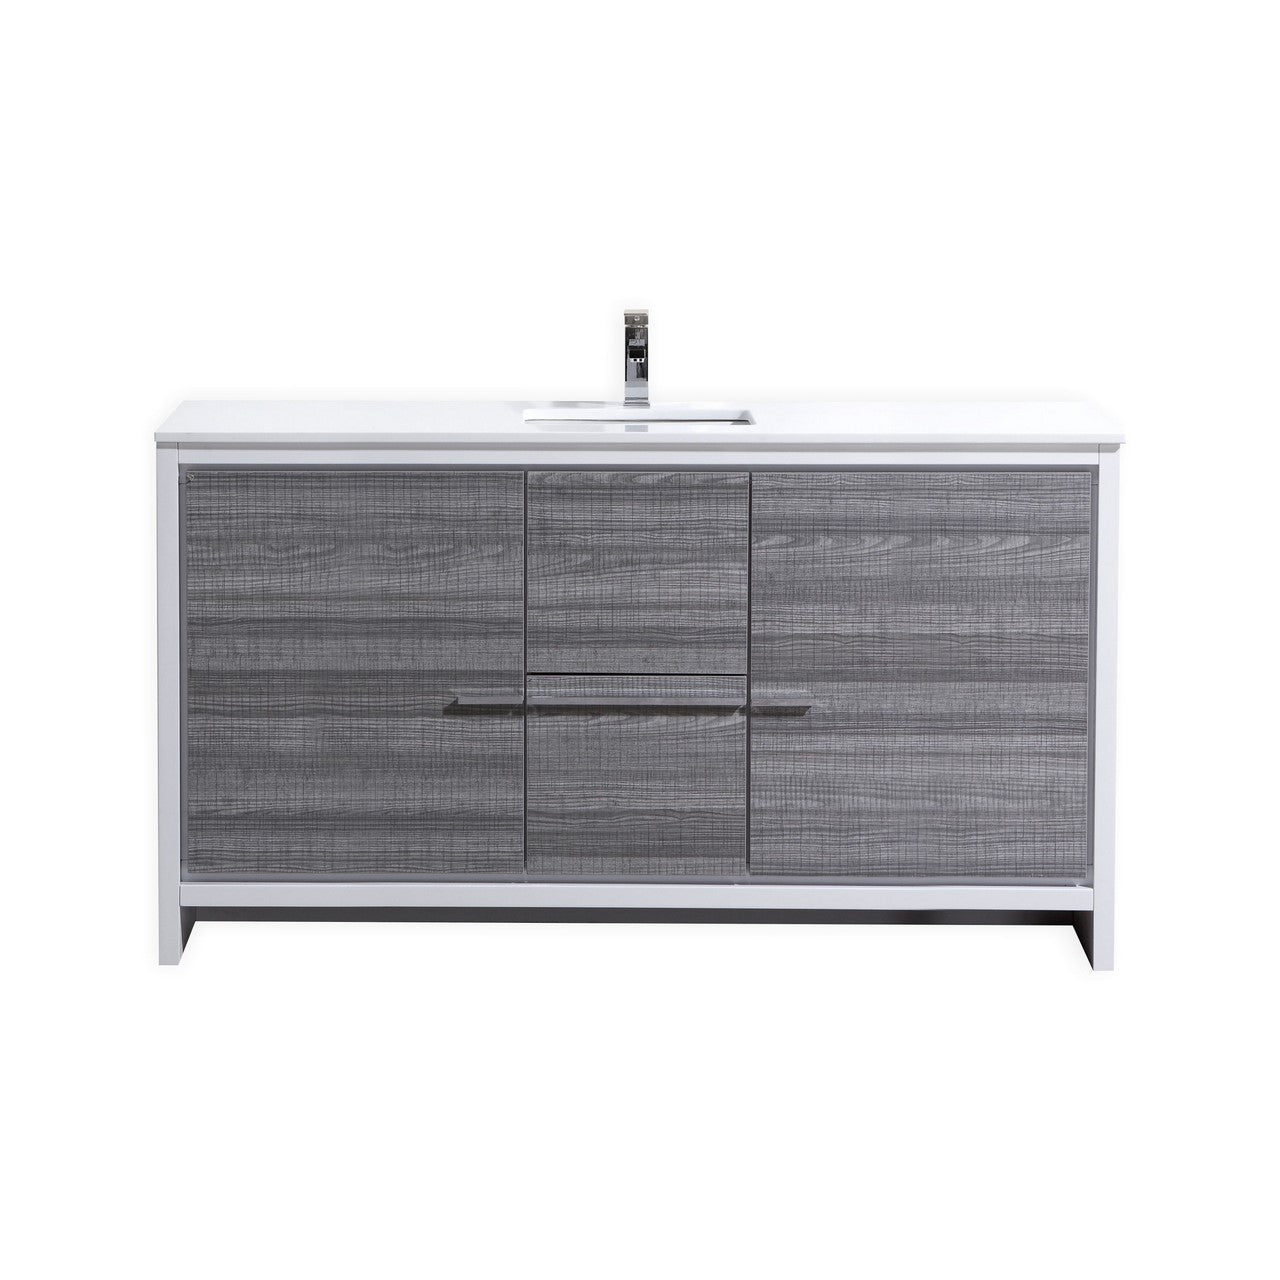 "DOLCE- 60"" Single Sink, High Gloss Ash Grey, Quartz Countertop, Floor Standing vanity-sale.myshopify.com"